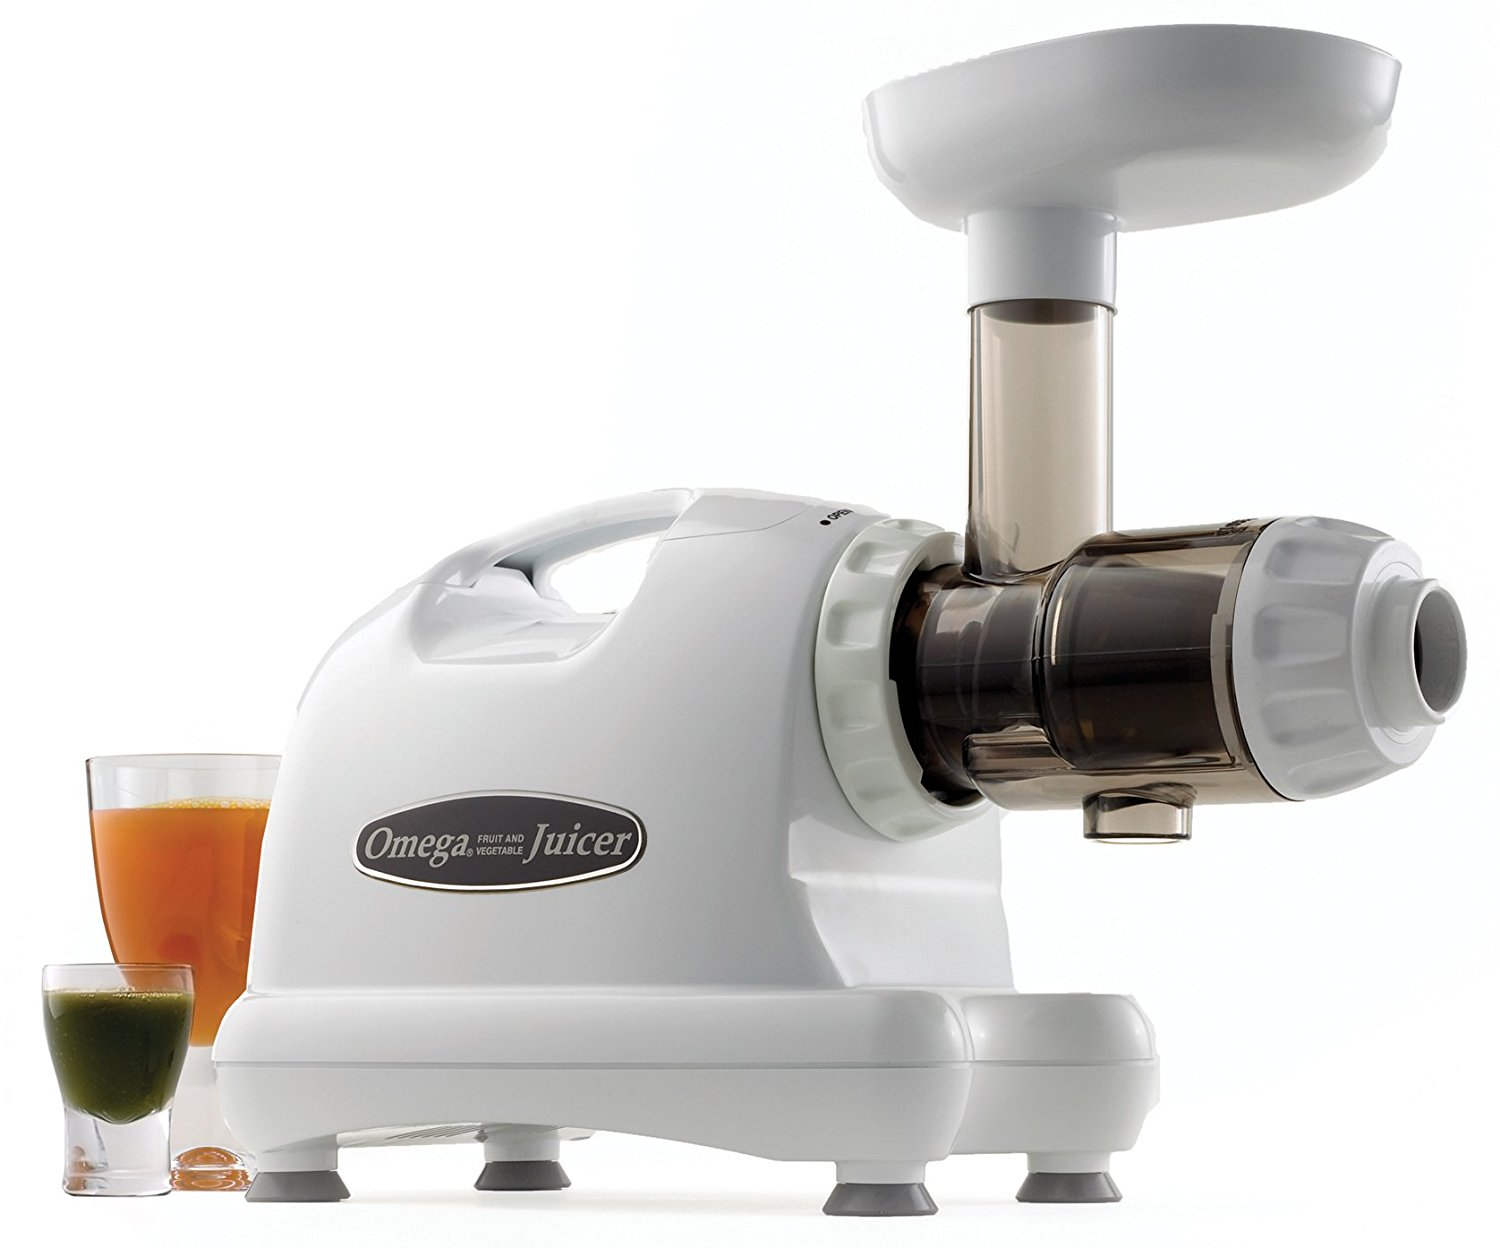 OMEGA JUICER   This is the juicer I've happily used since 2012! While I highly recommend the 8004 model it's been discontinued though still available to purchase. Try newer models if it's gone!